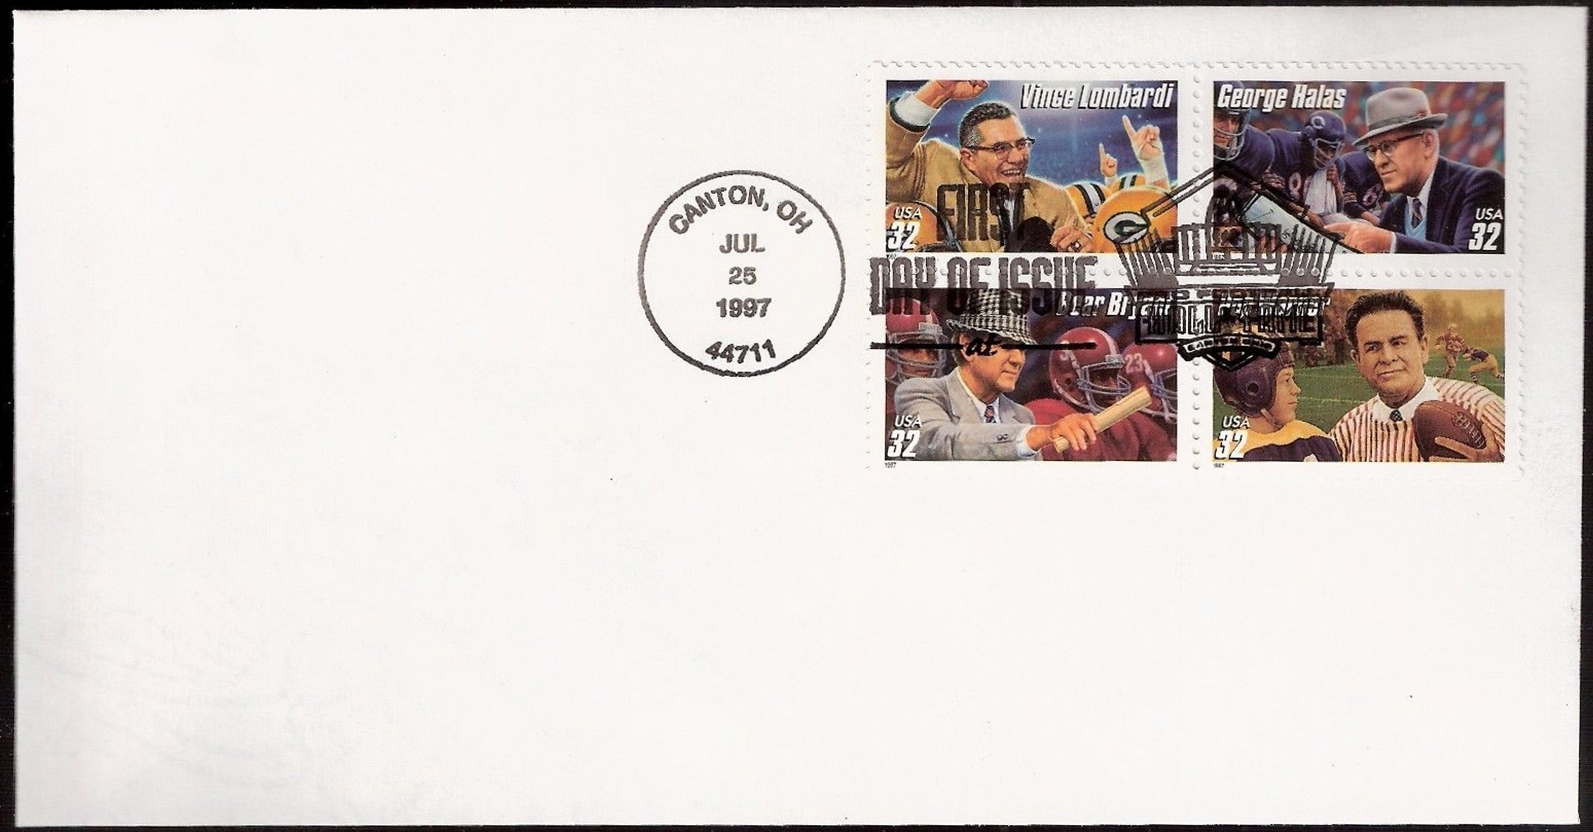 United States - Scott #3146a (1997) first day cover